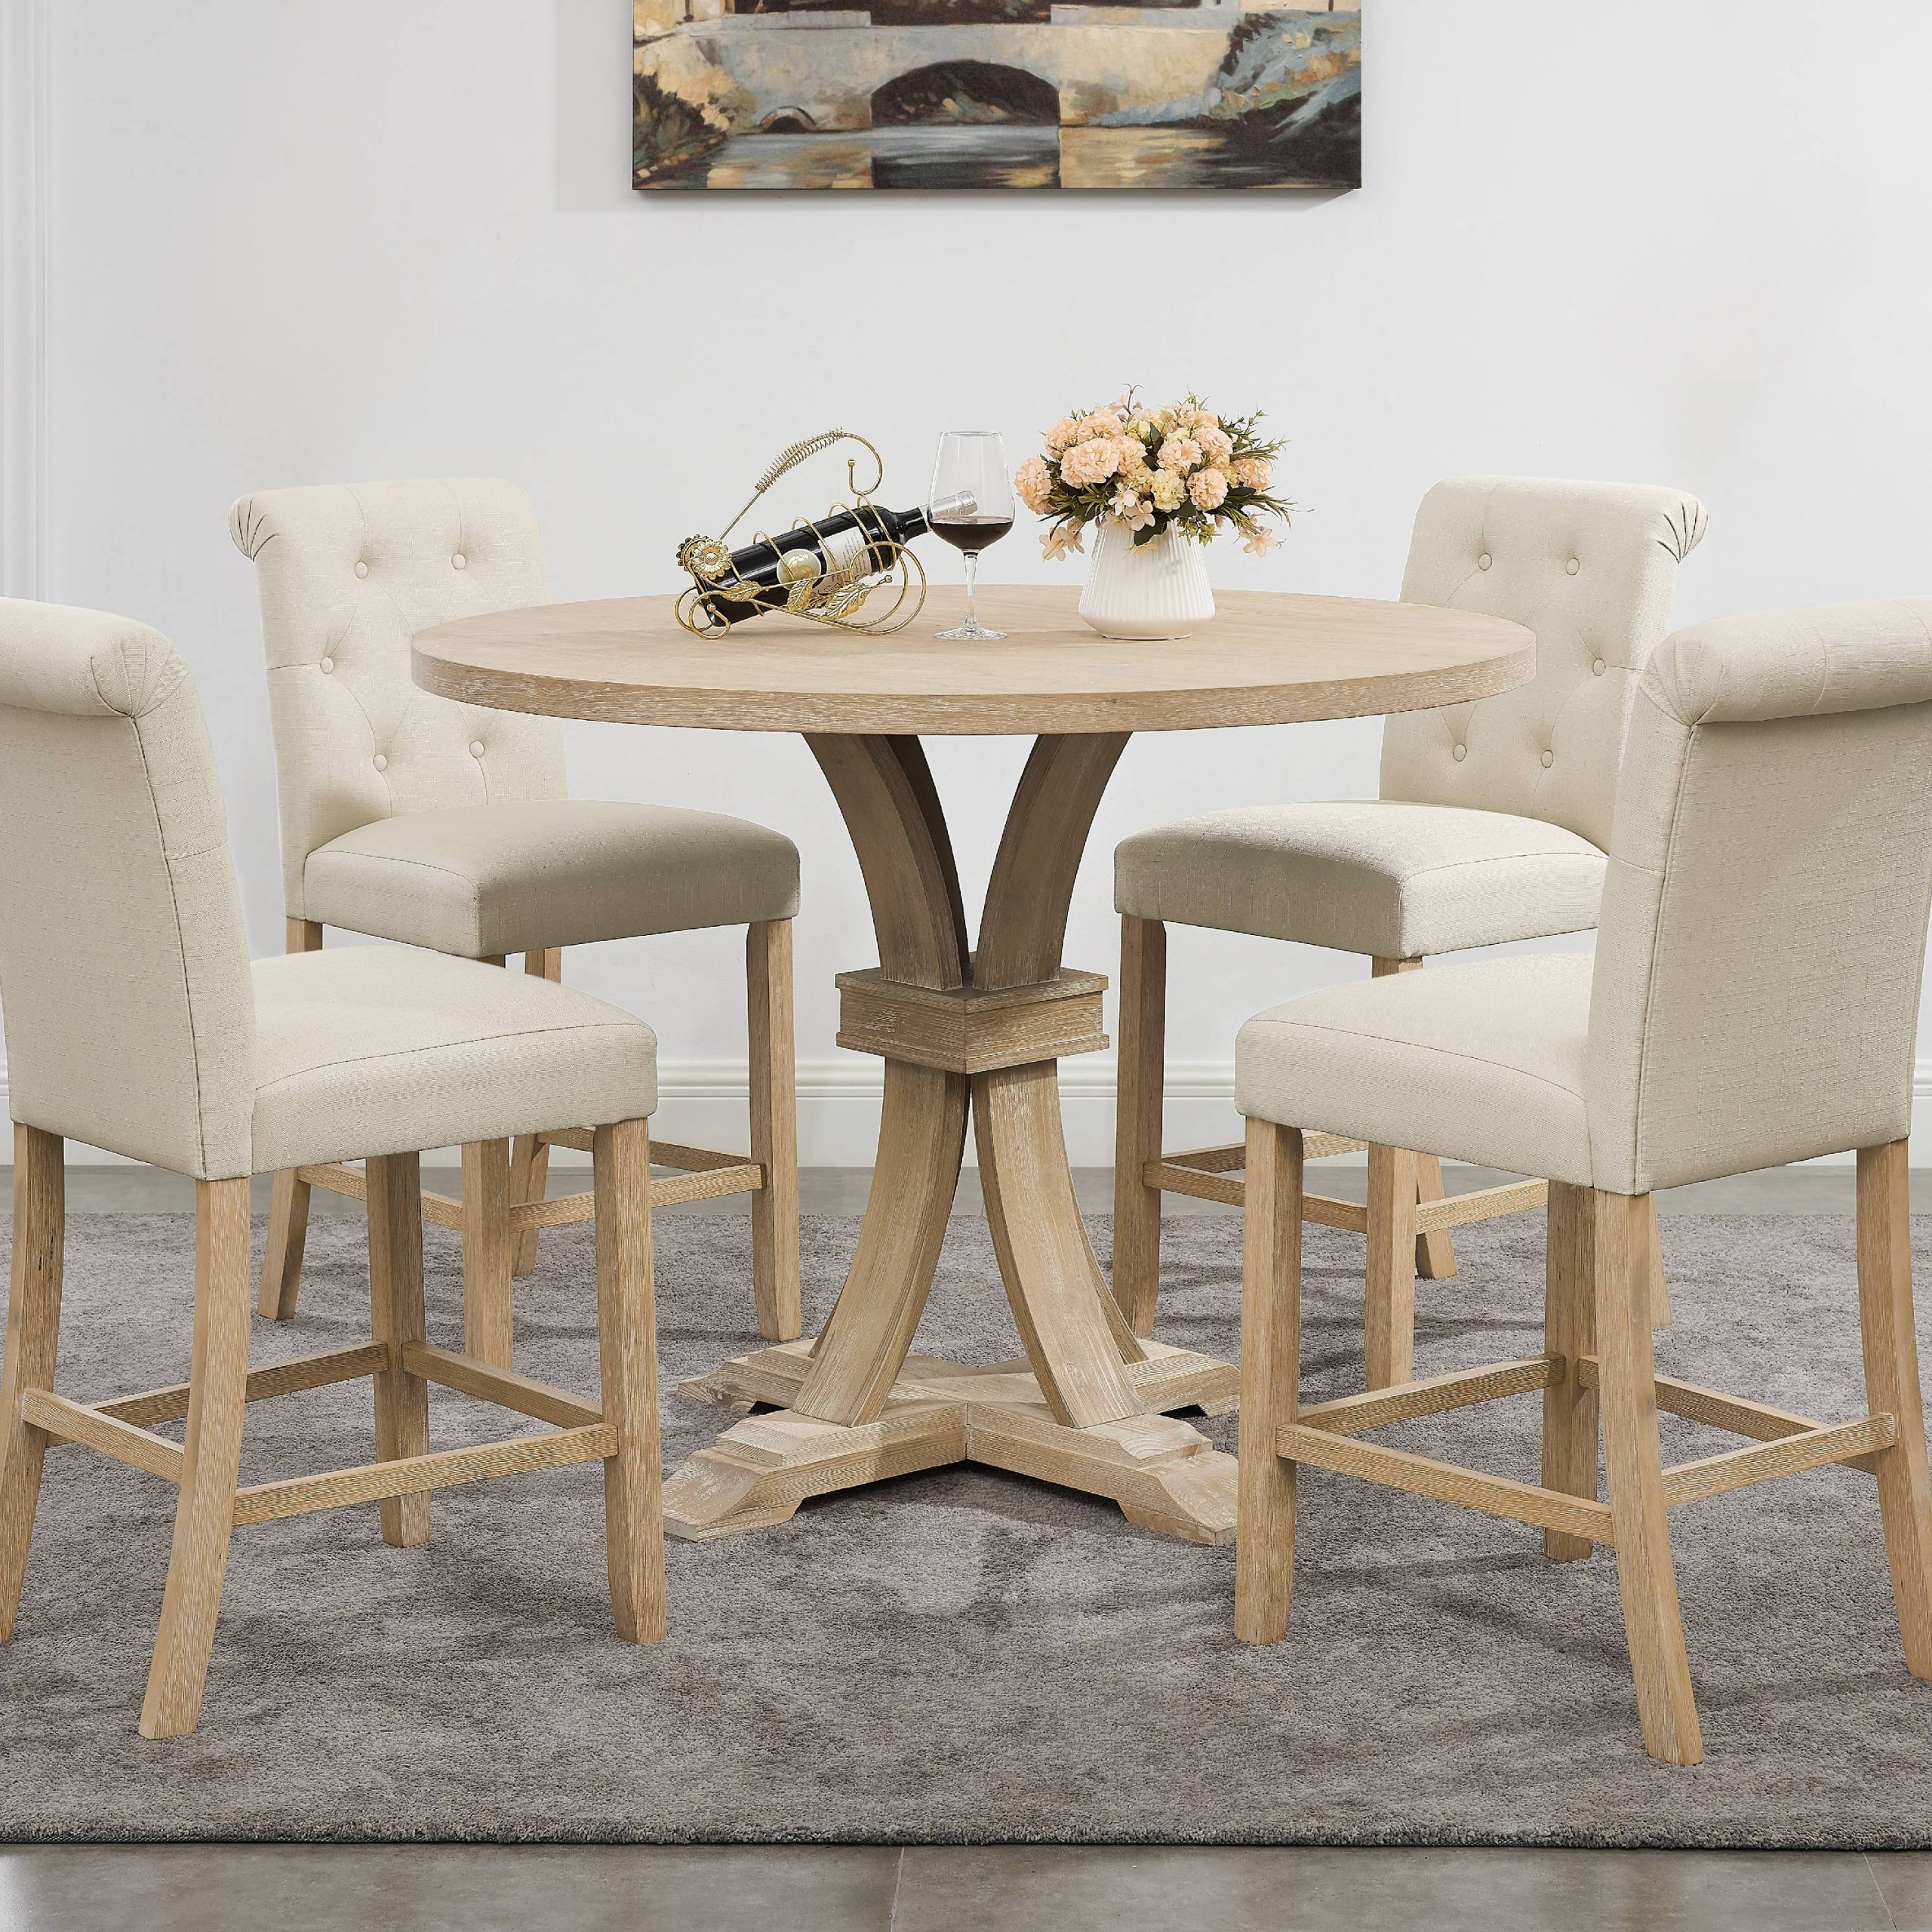 Siena White Washed Finished 5 Piece Counter Height Dining In 2018 Counter Height Pedestal Dining Tables (View 4 of 15)